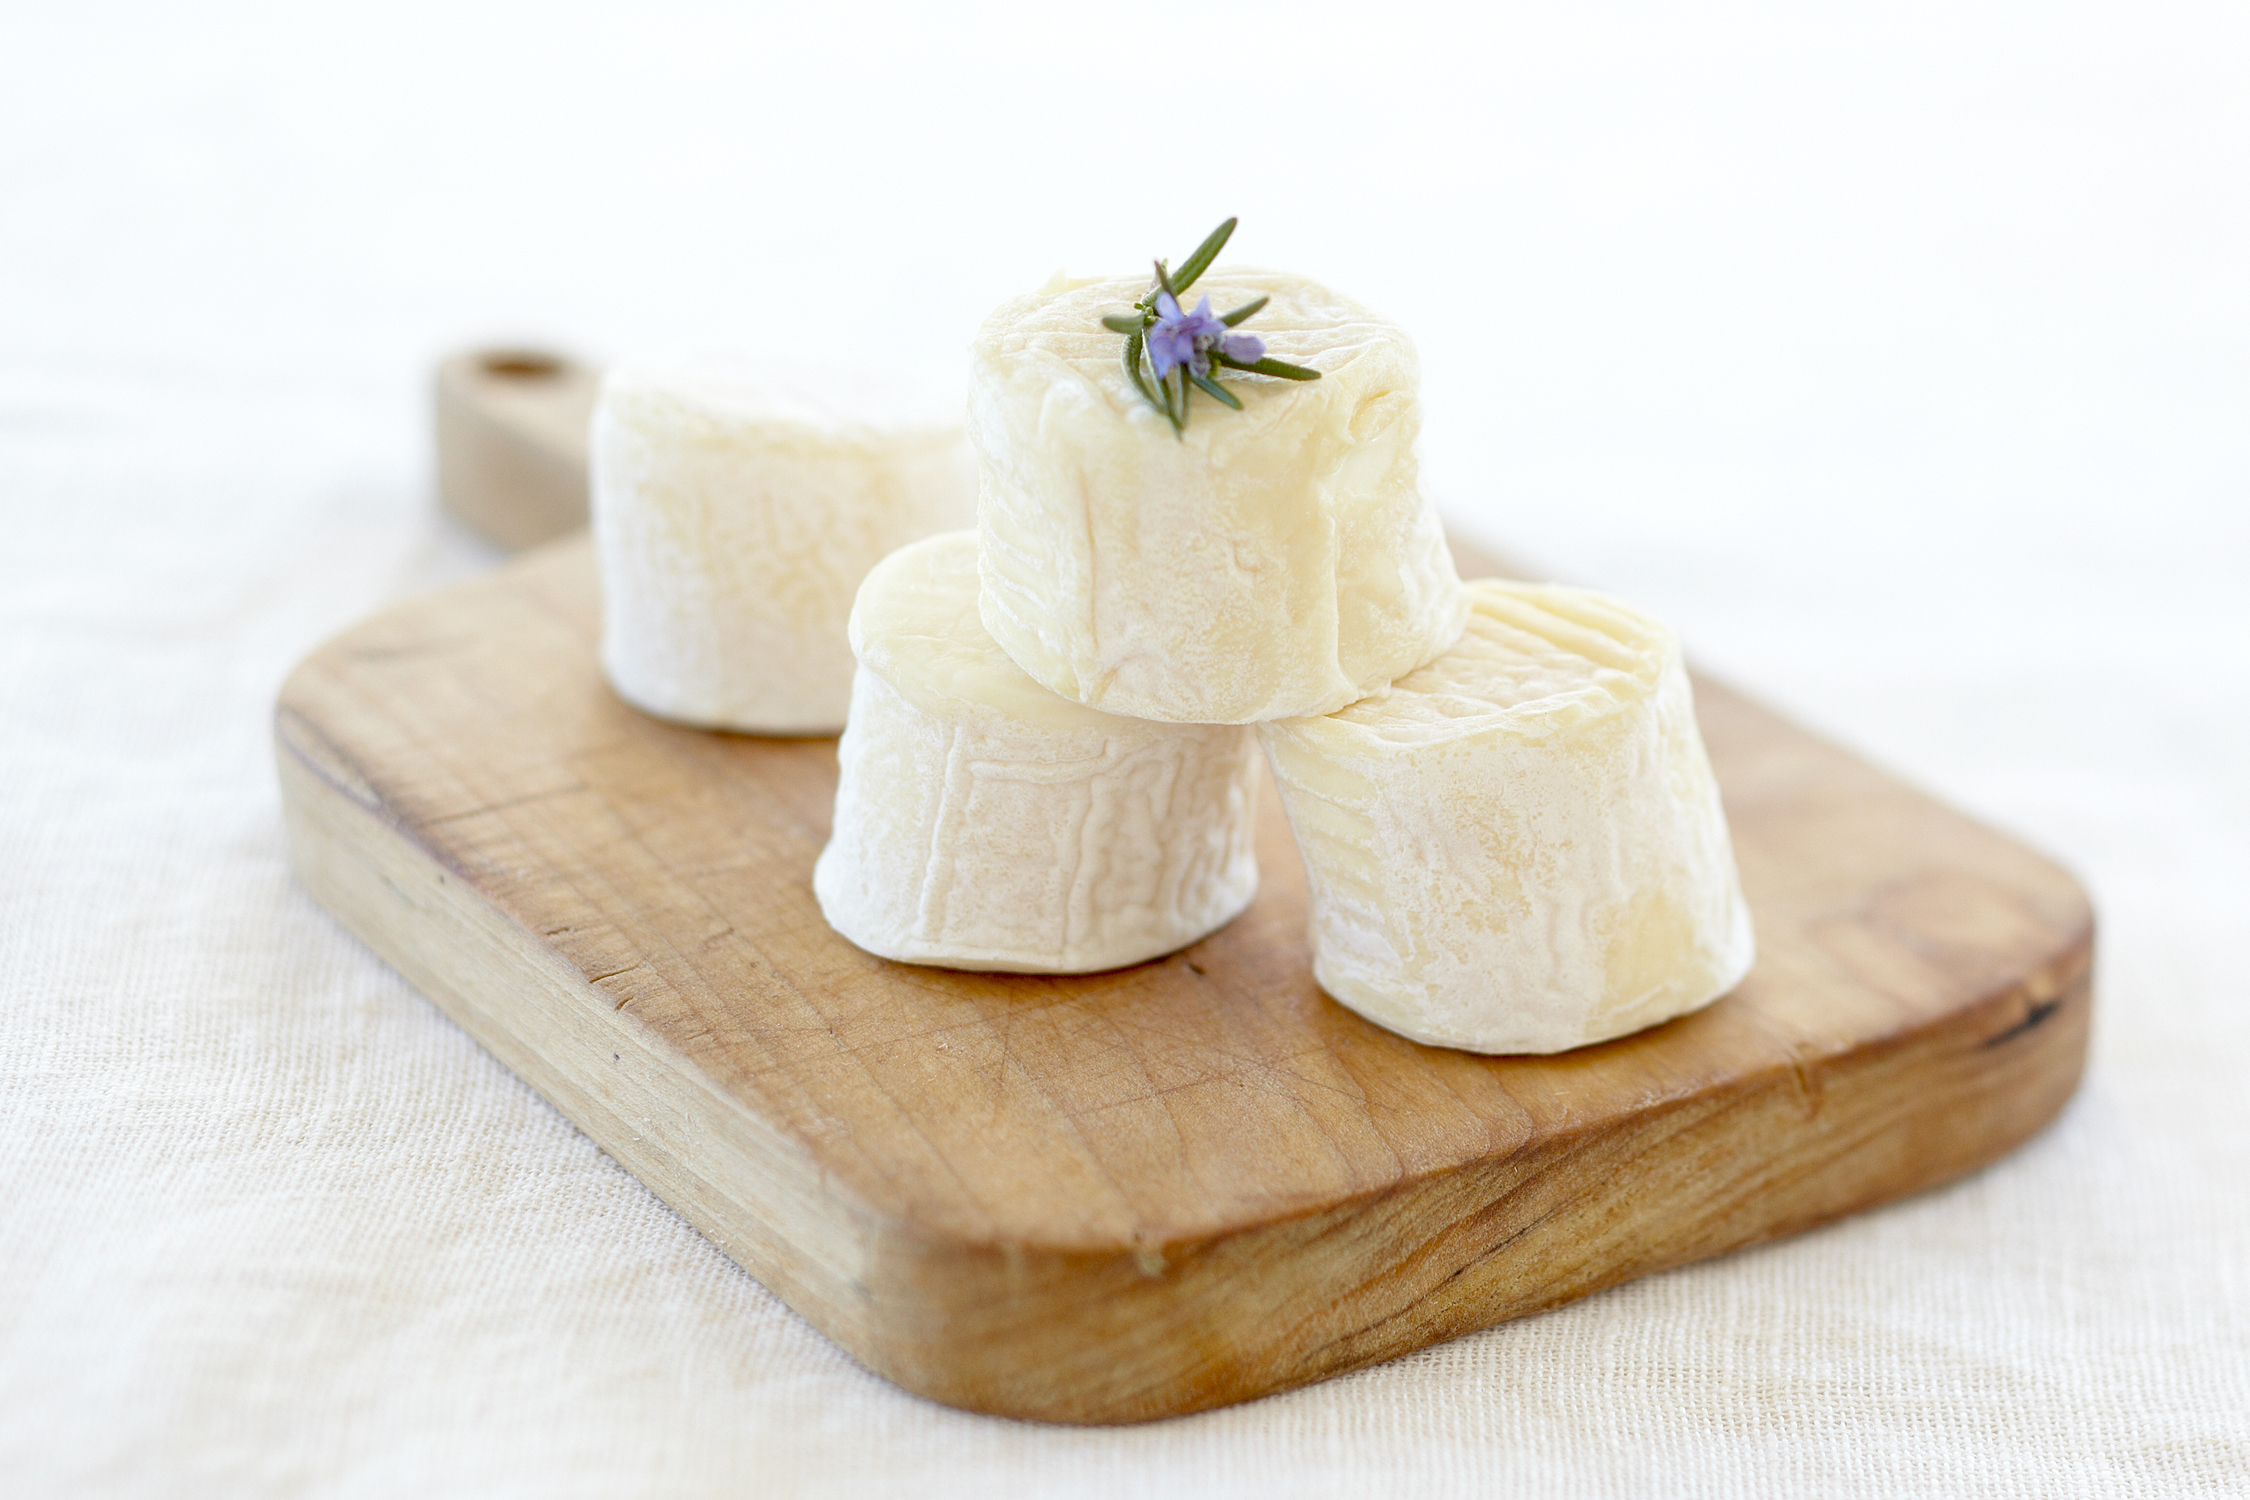 Goat-cheese-3